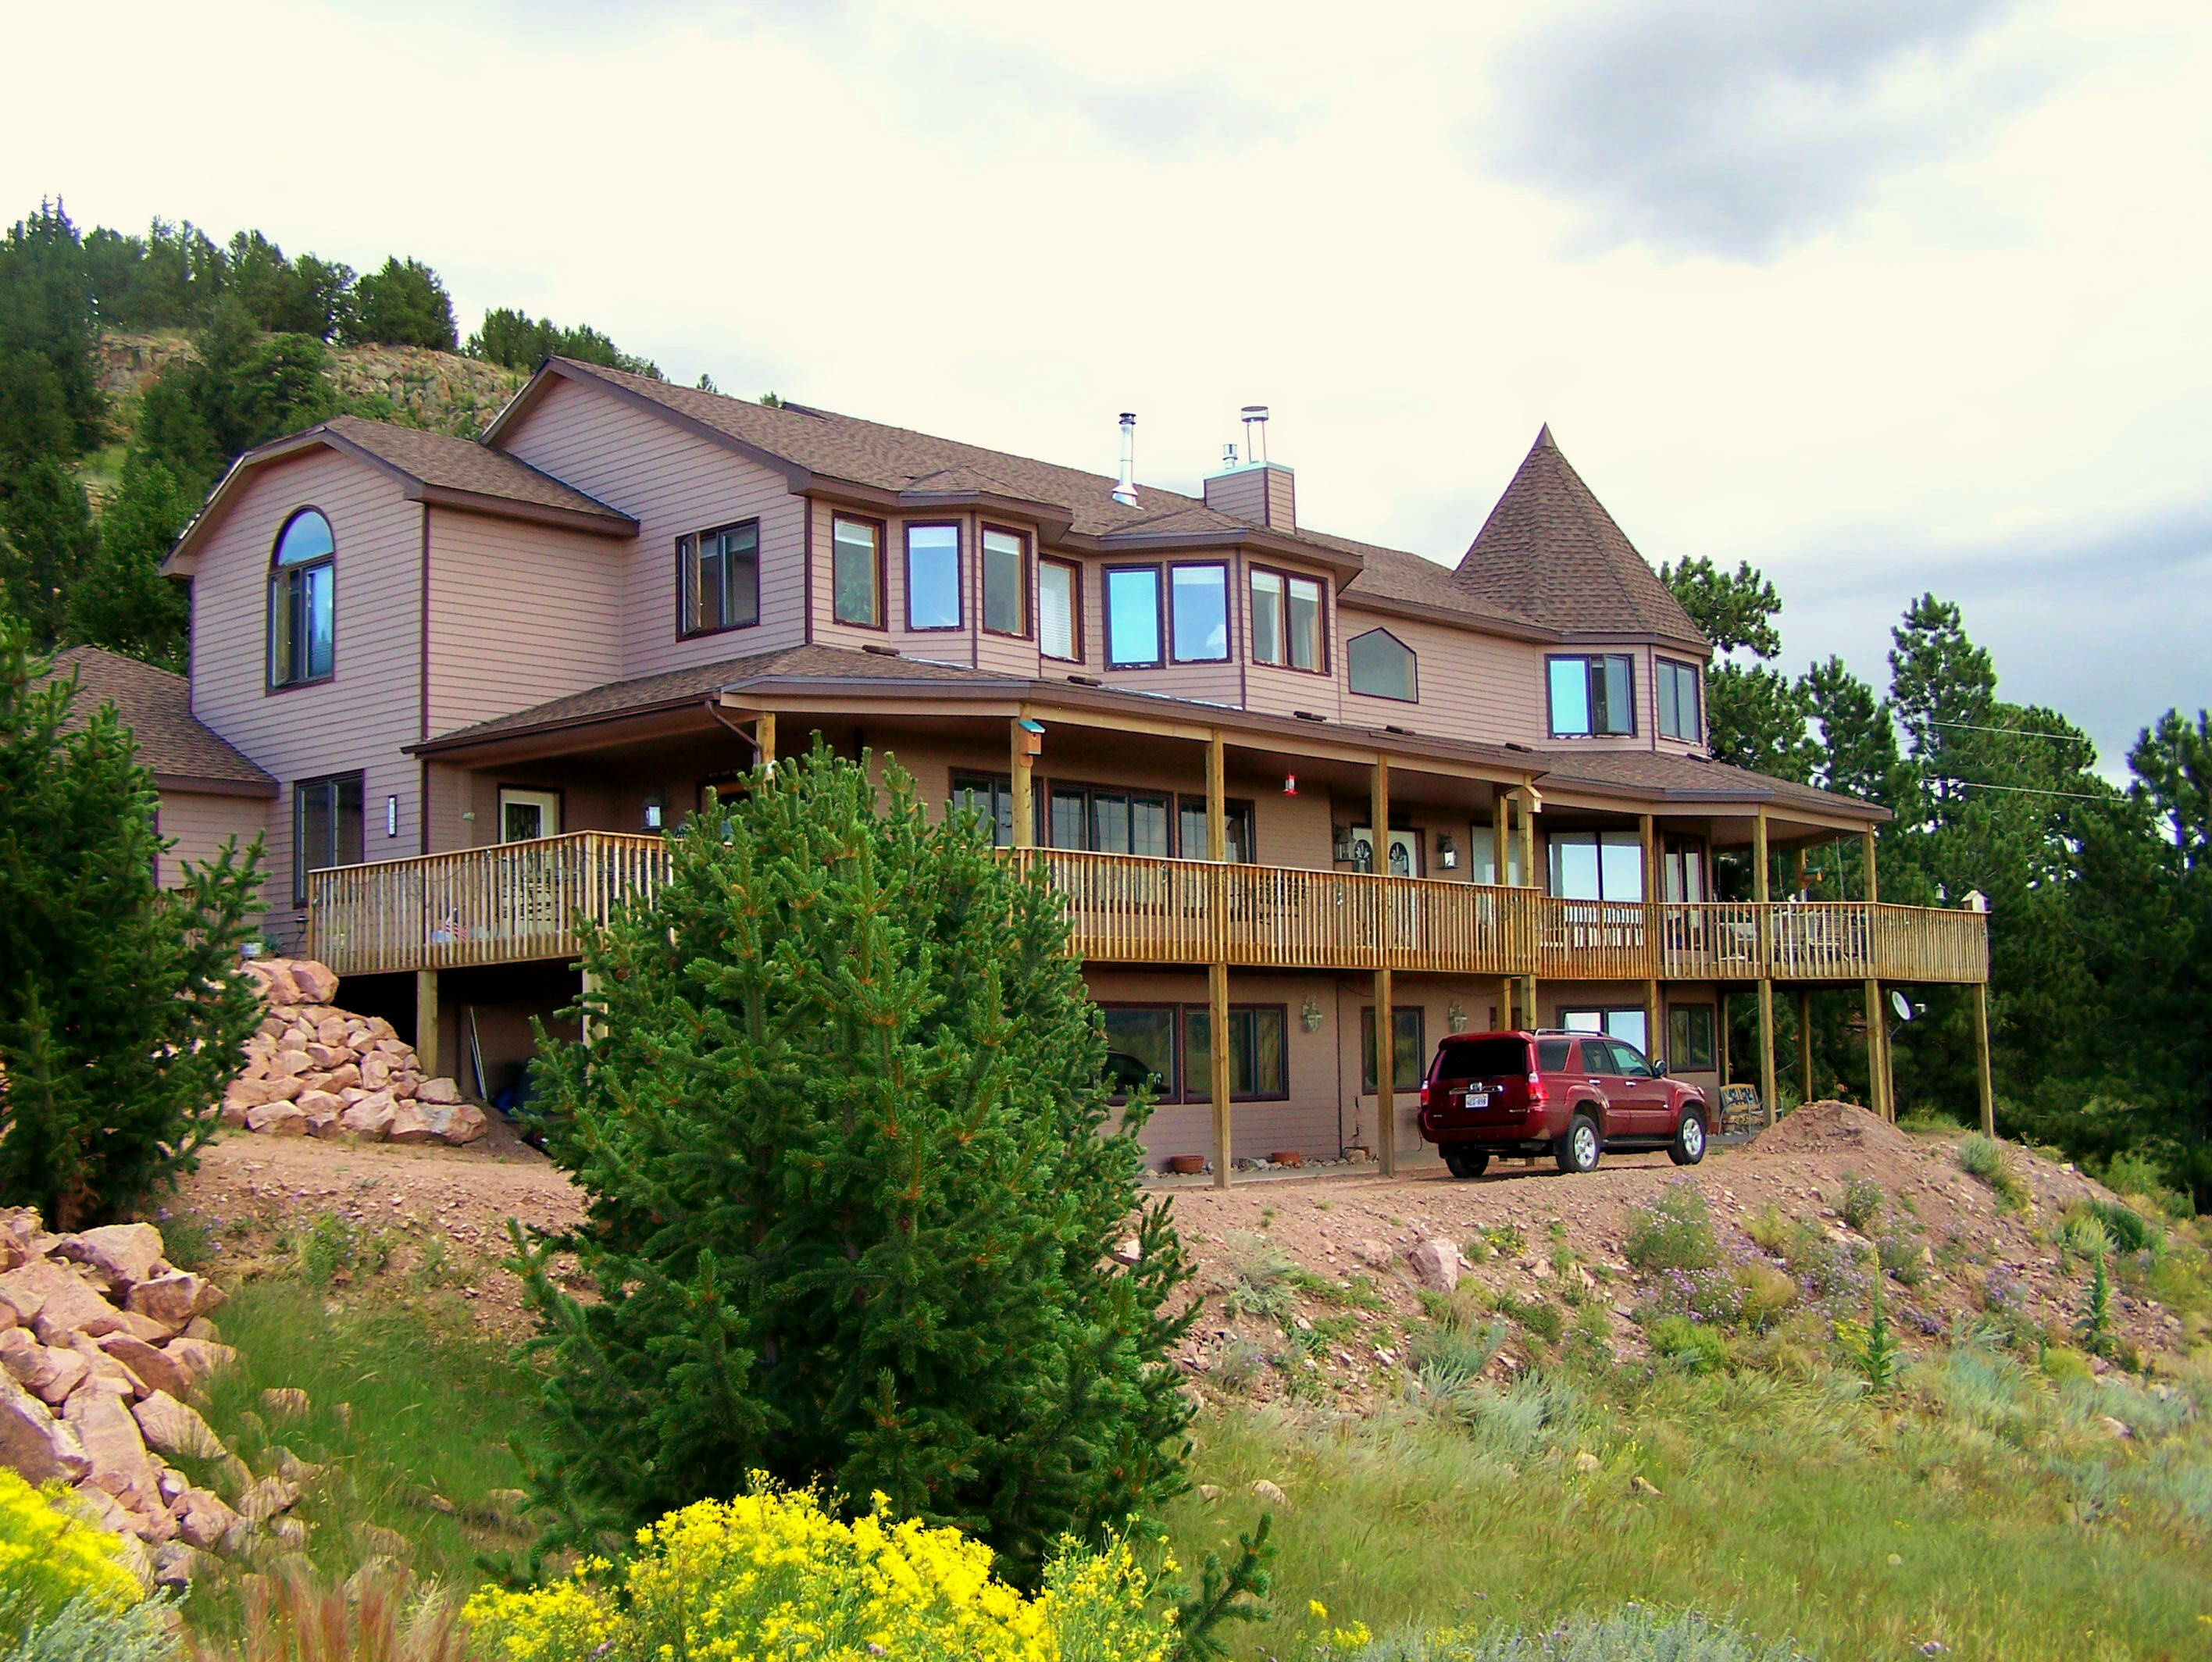 Whispering Pines Bed and Breakfast and Vacation Home Rental